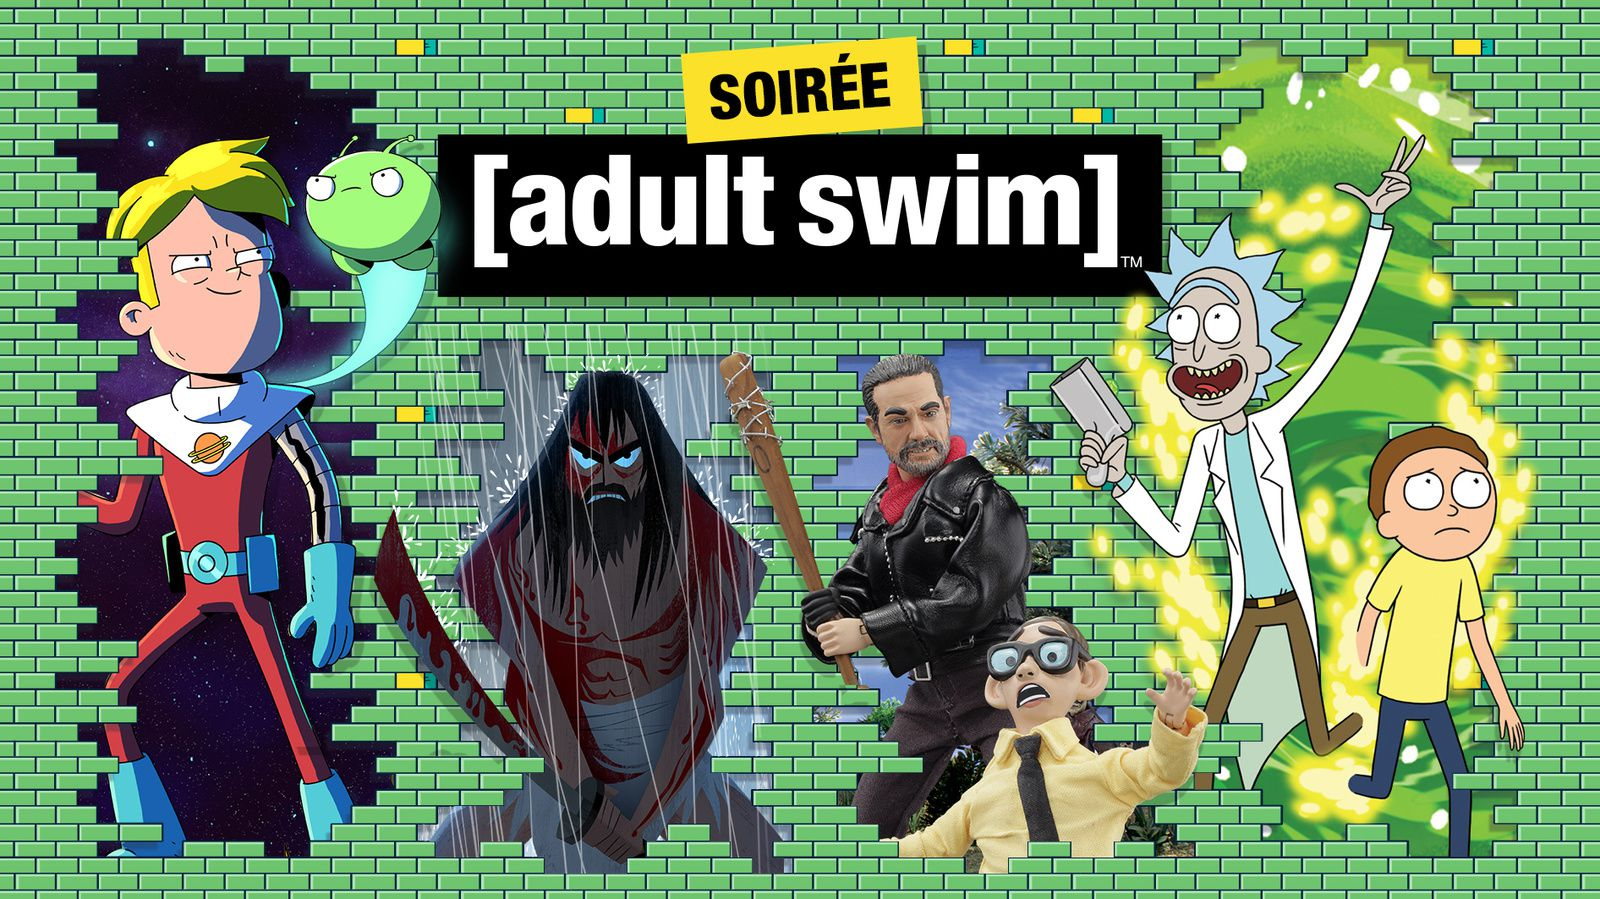 Le dispositif de Warner TV et Adult Swim au Comic Con Paris.